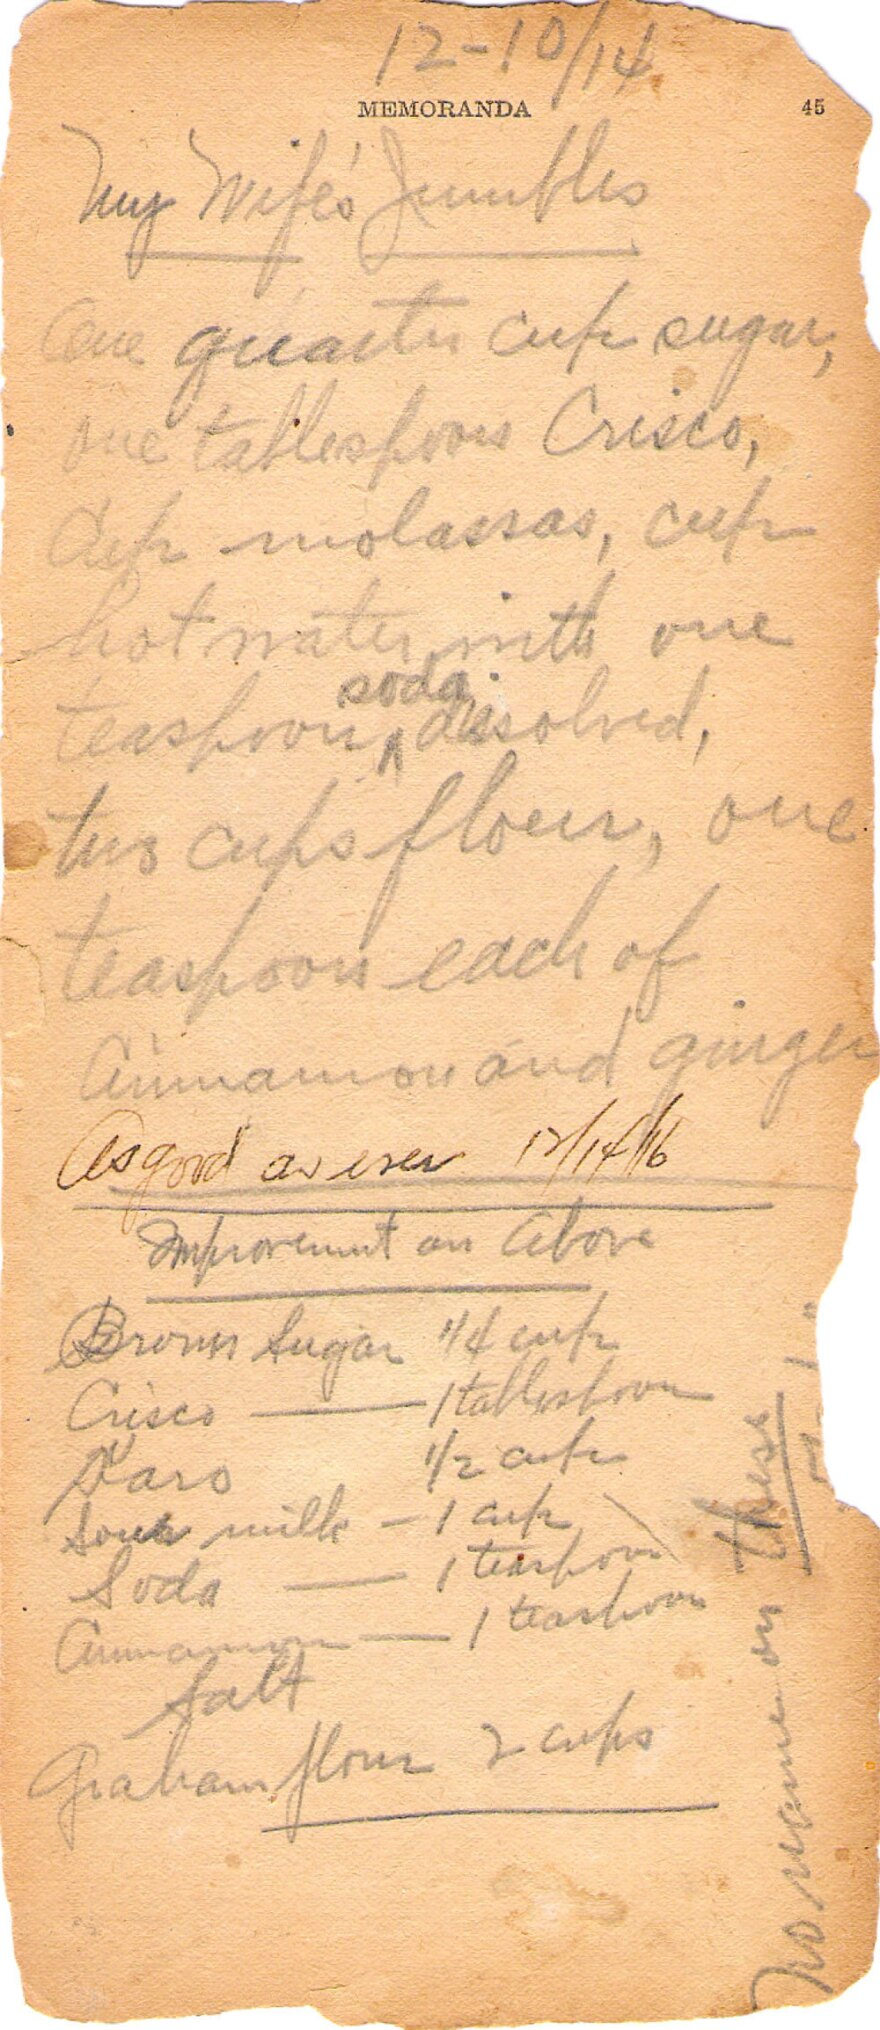 In 1914, Frederick Rickmeyer documented his wife's cookie recipe on the blank memoranda pages of a cookbook.